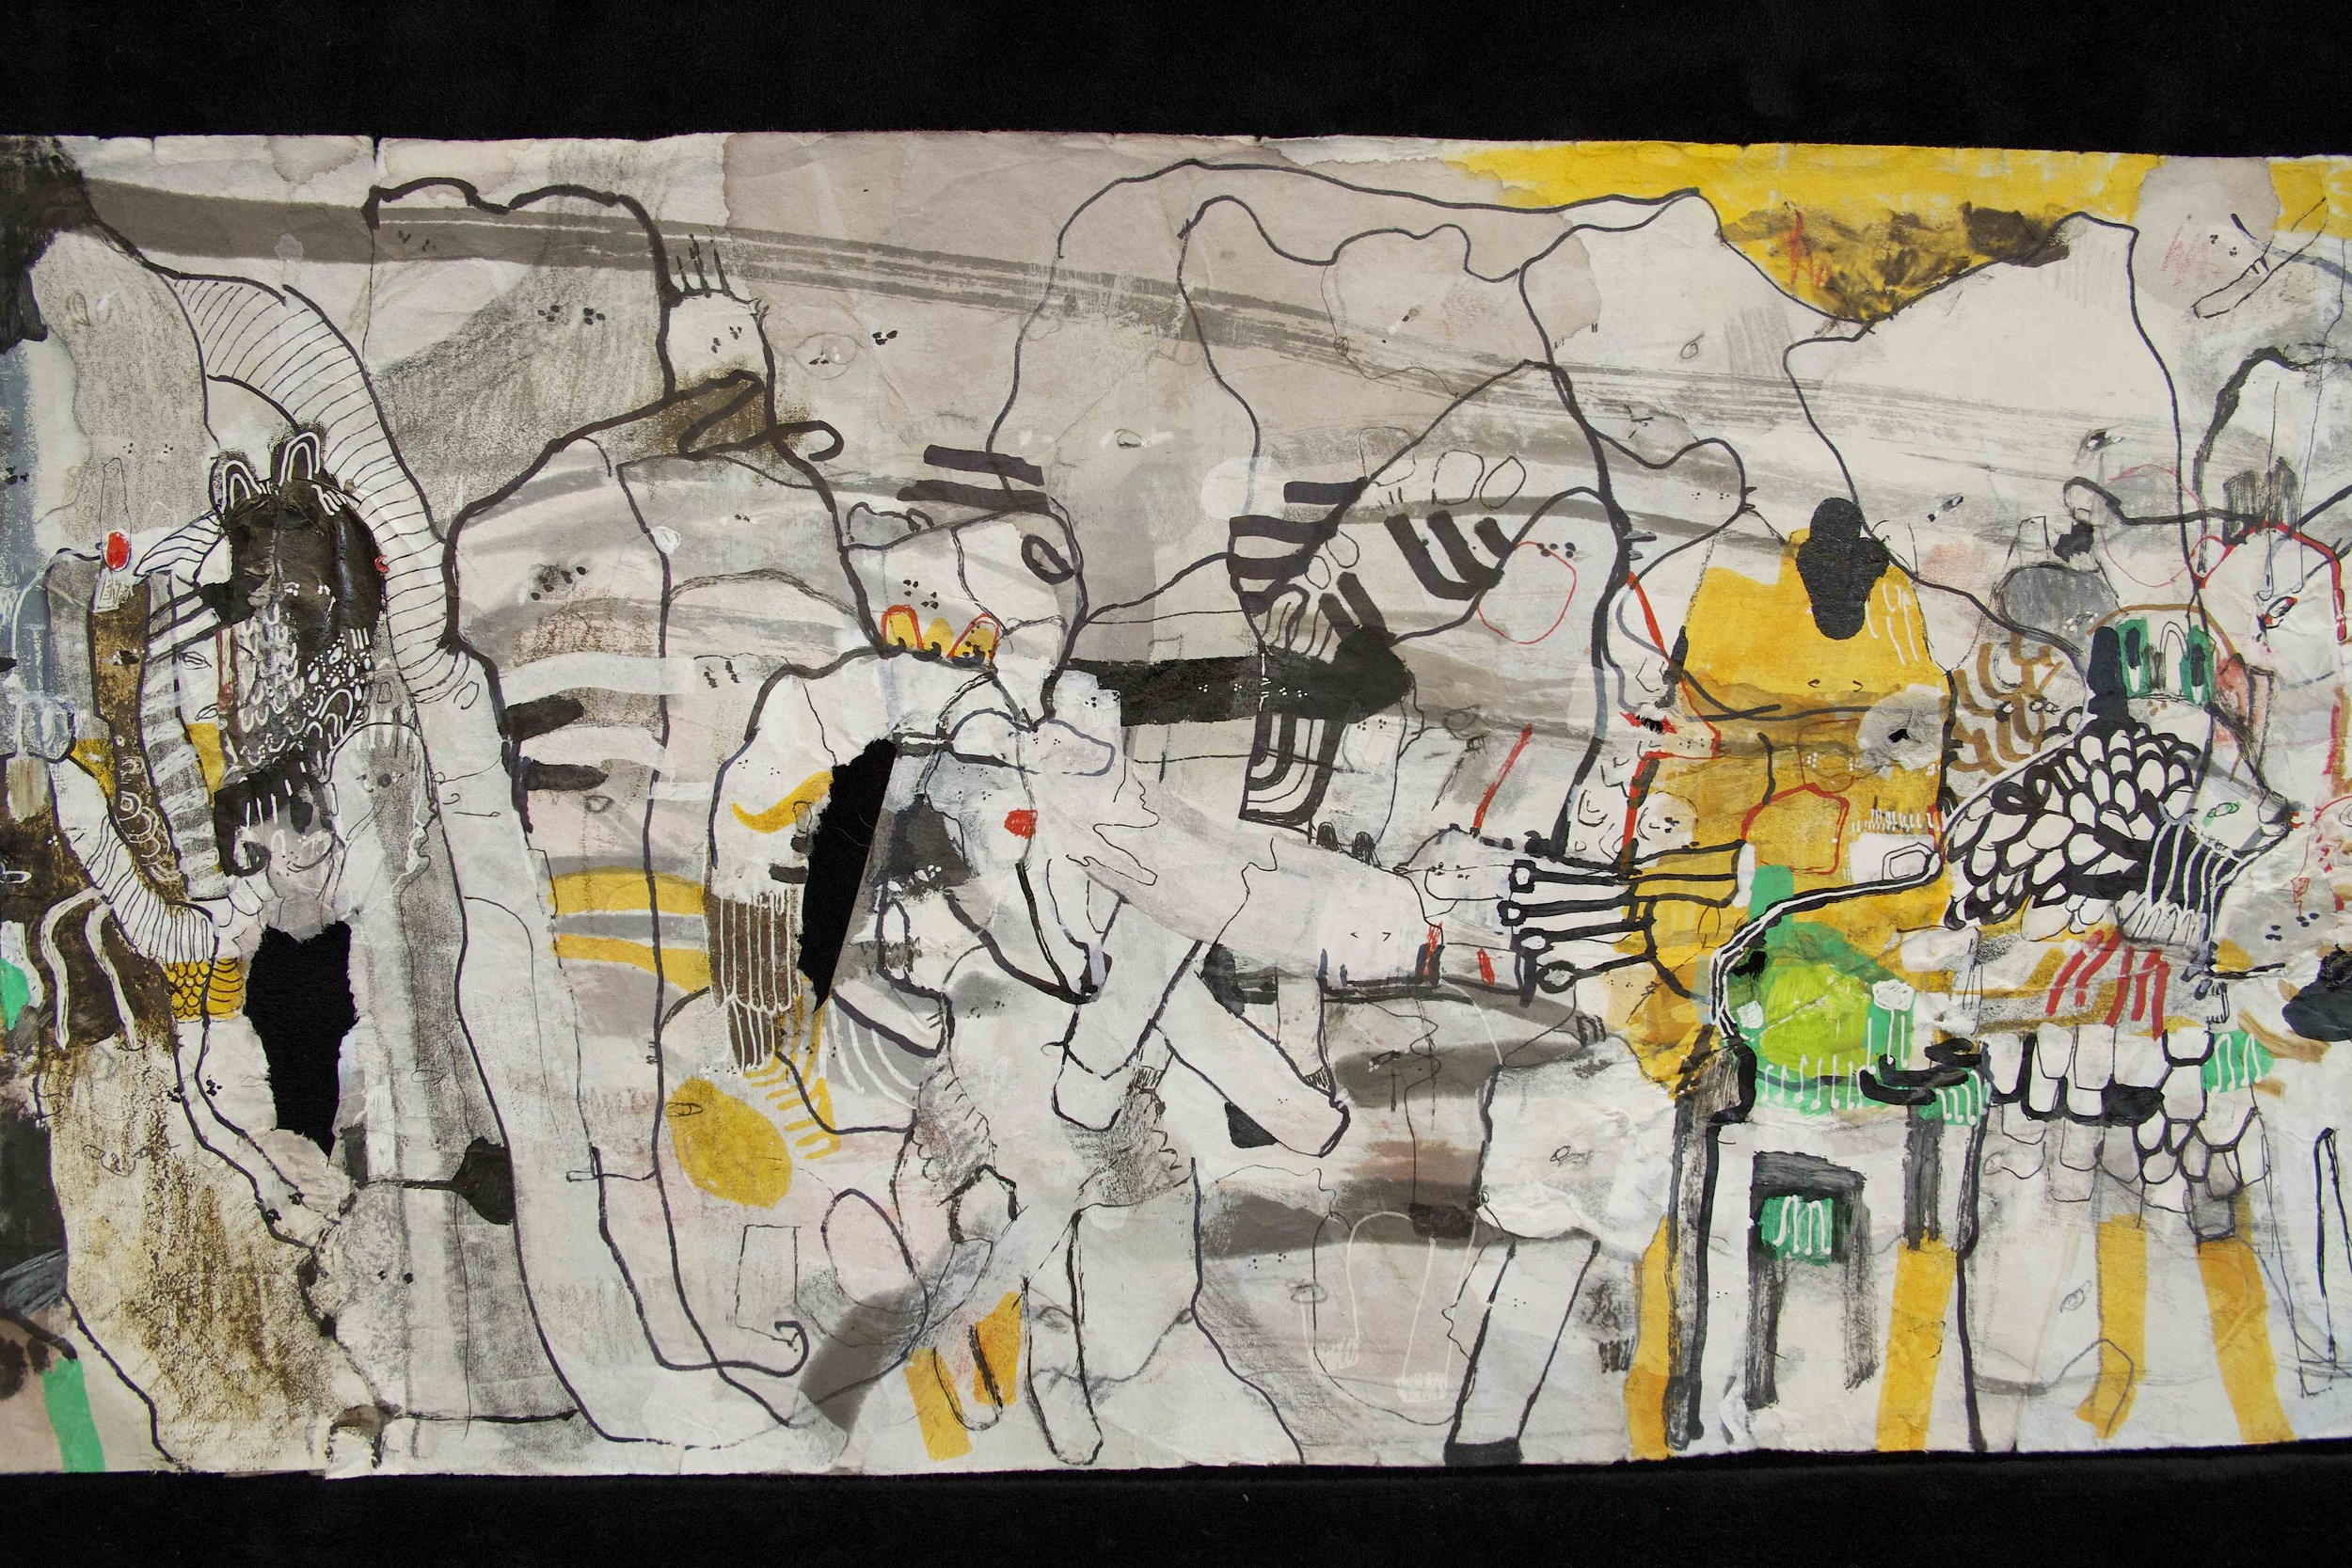 """[Detail no 6]  """"The Wind atop The Wood -Winds of Mount Meru Tangling Threads of Rainbow atop the Wood -Scroll 8""""   11 inches x 60 feet  ink, watercolor, gouache, dye, lost & found paper, crayon and graphite on mulberry paper scroll  2015"""